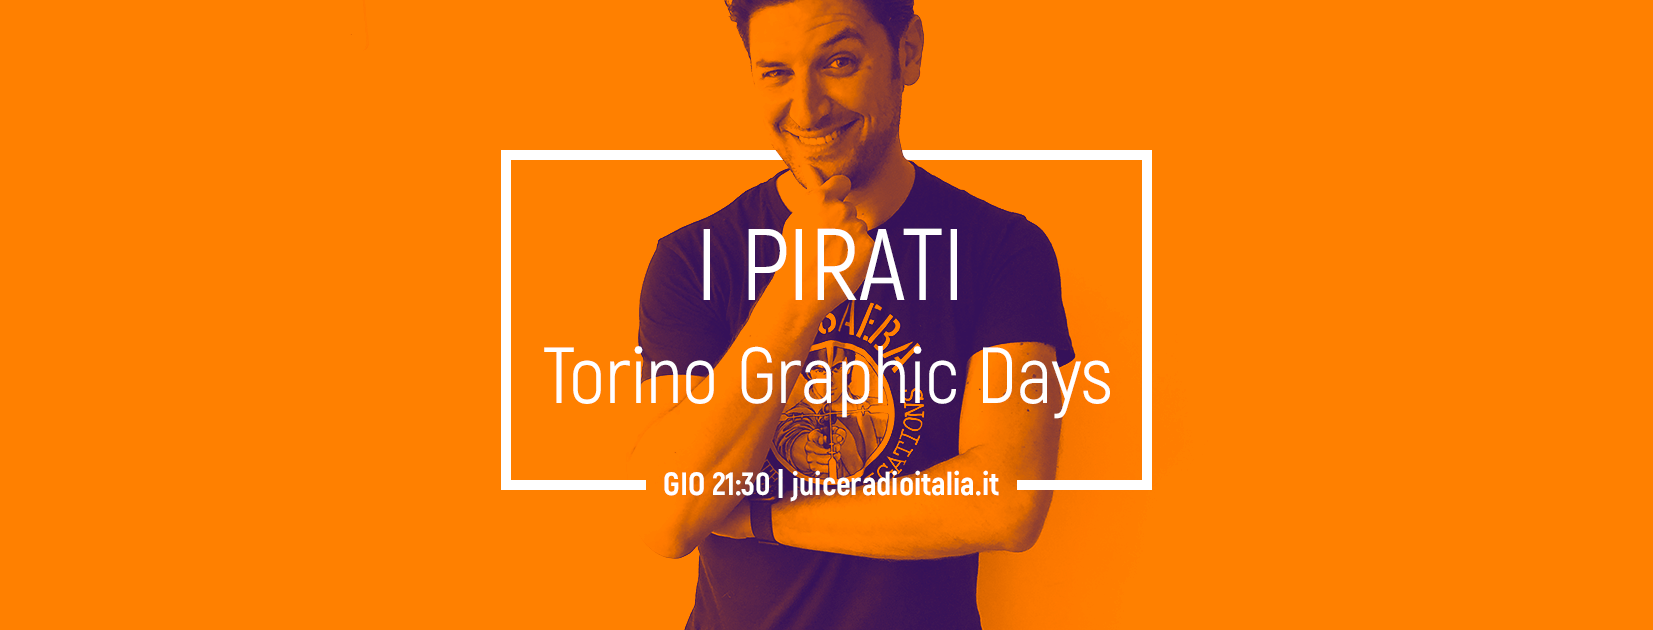 torino_graphic_days